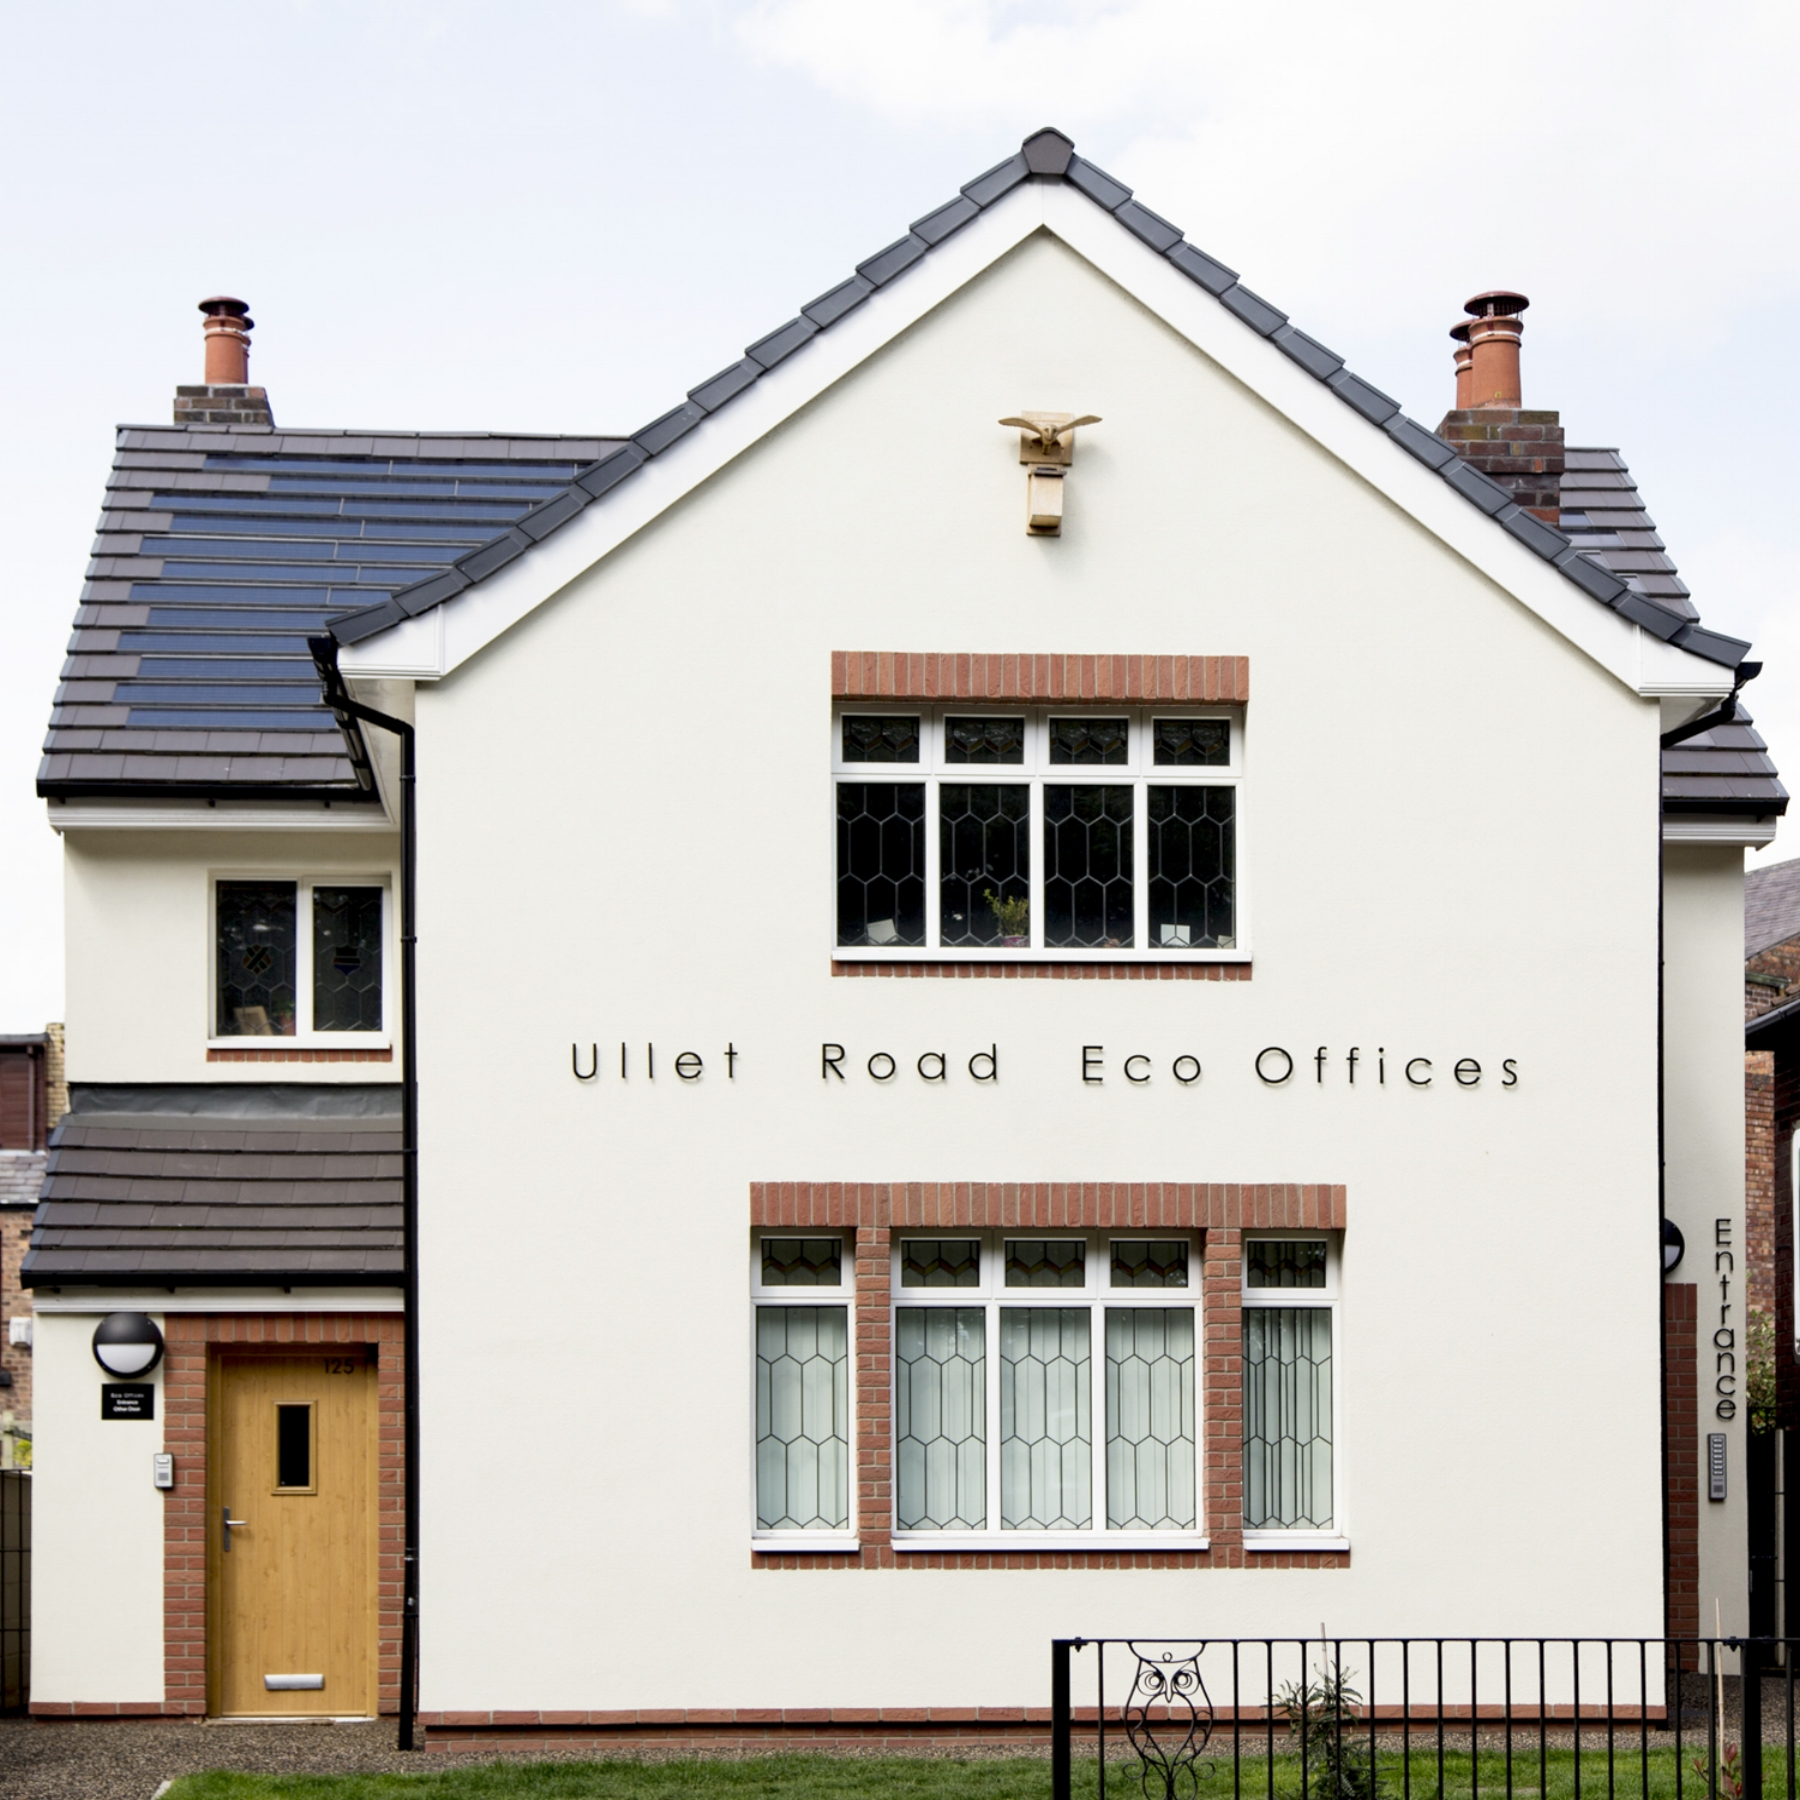 Ullet Road Eco Offices 125a Ullet Road, Liverpool L17 2AB   www.ullet-eco.co.uk